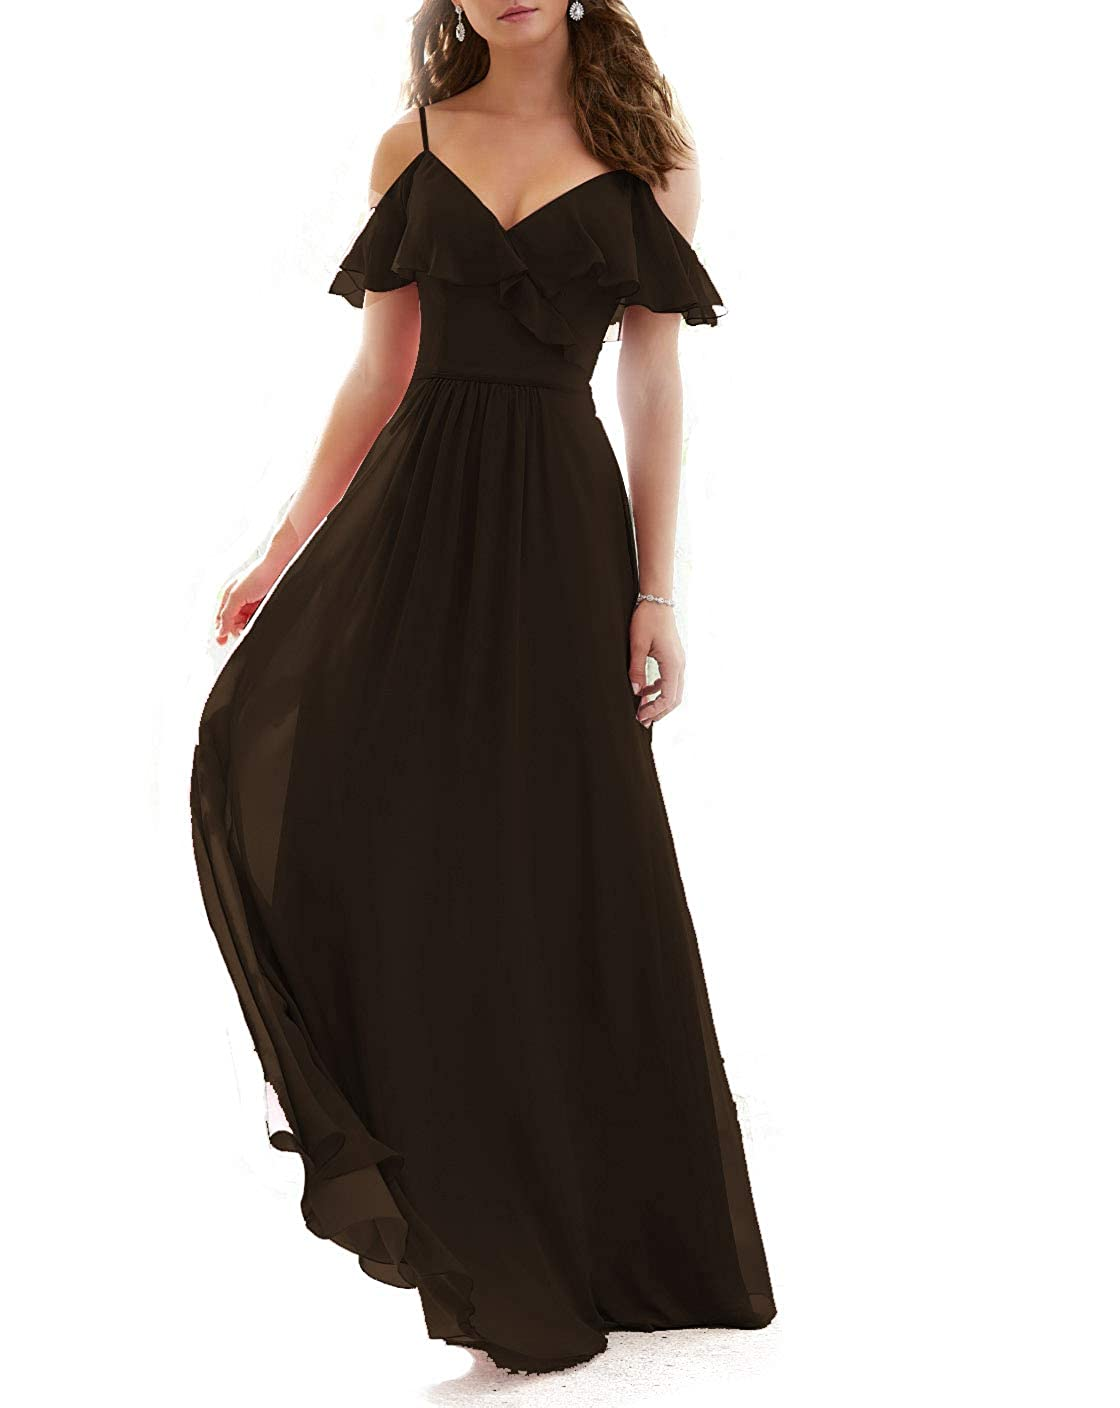 Chocolate Stylefun Ruffled VNeckline Bridesmaid Gowns Spaghetti Straps Long Prom Party Dress for Women's KN003